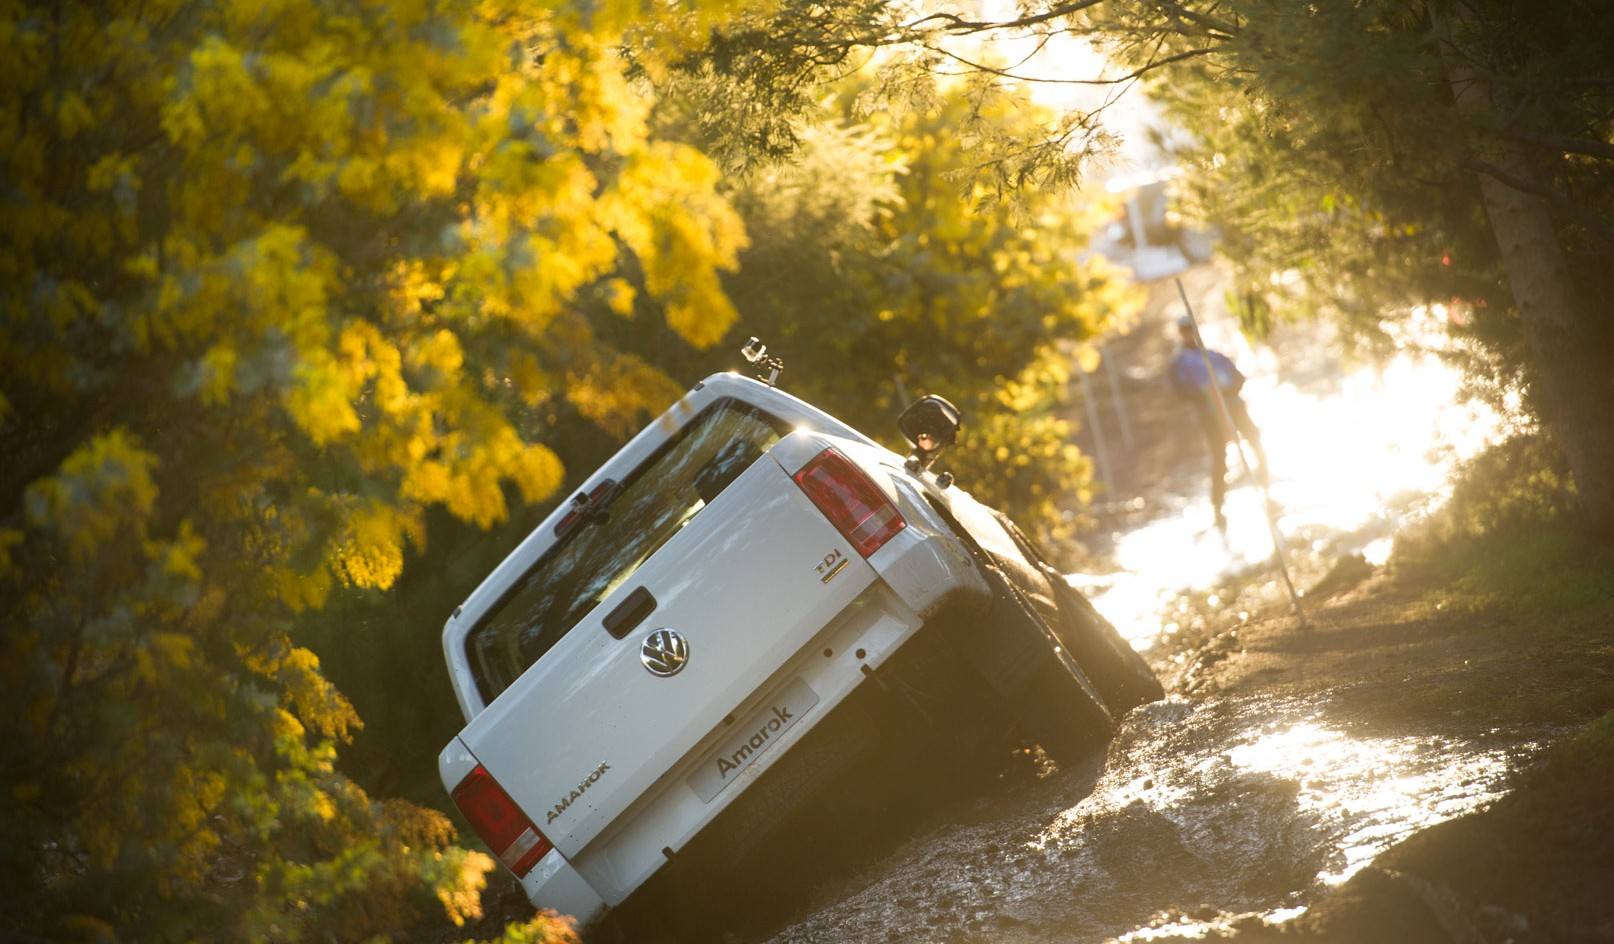 <div>Events</div><div> <a href='https://nedmeldrum.com.au/project/volkswagen-mud-sweat-and-gears/'>View Series</a></div>